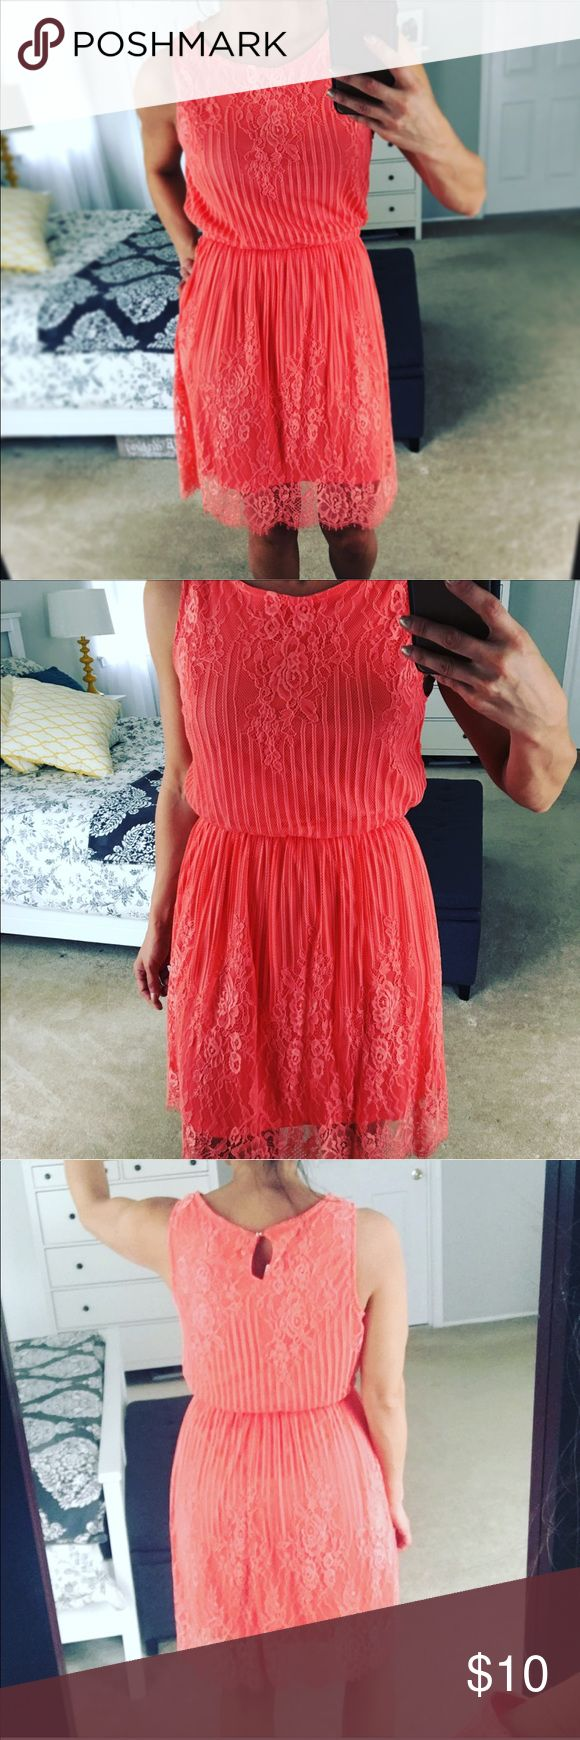 CORAL LACE DRESS NWT coral colored lace dress with a cinched midsection that's super flattering. Eyeshadow Dresses